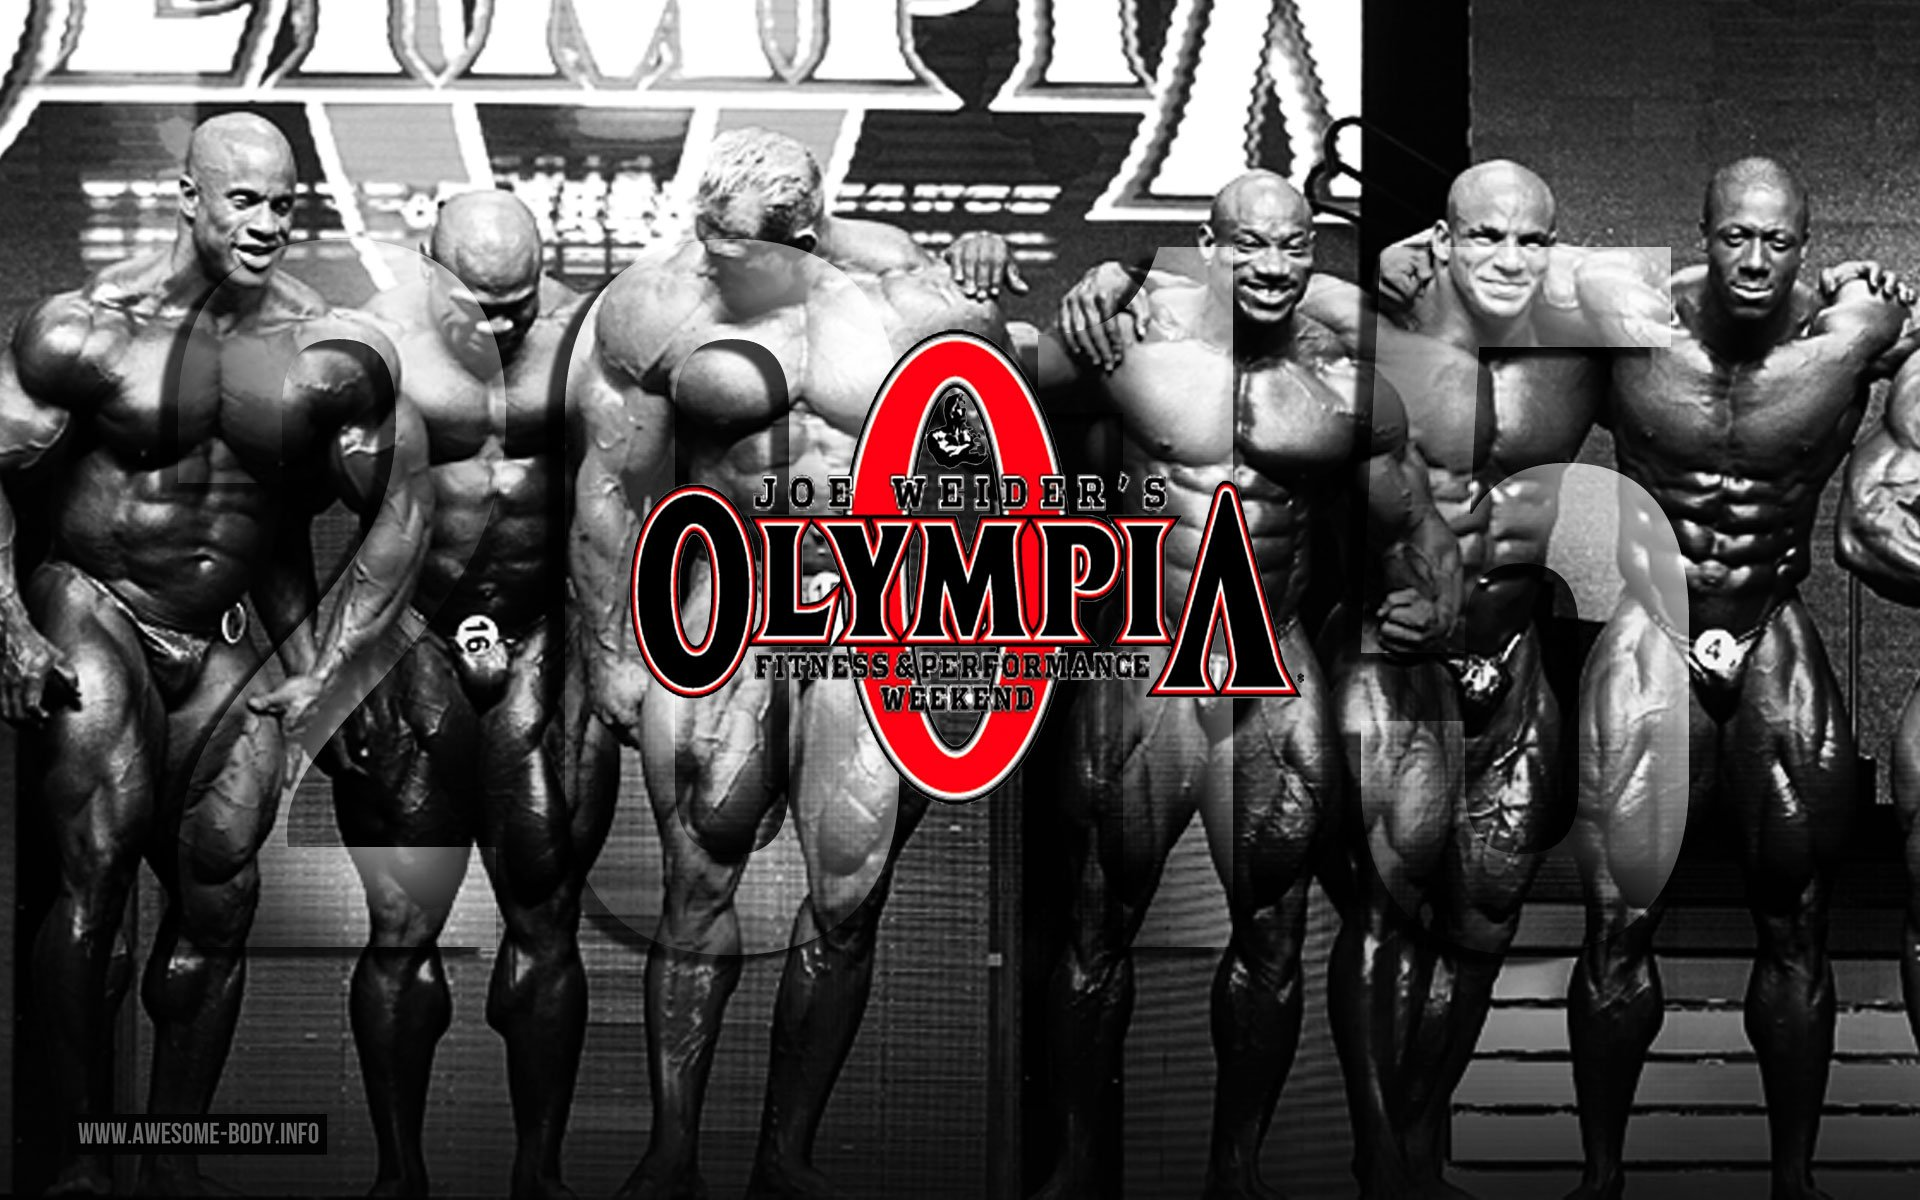 Mr Olympia 2015 Poster 1920x1200